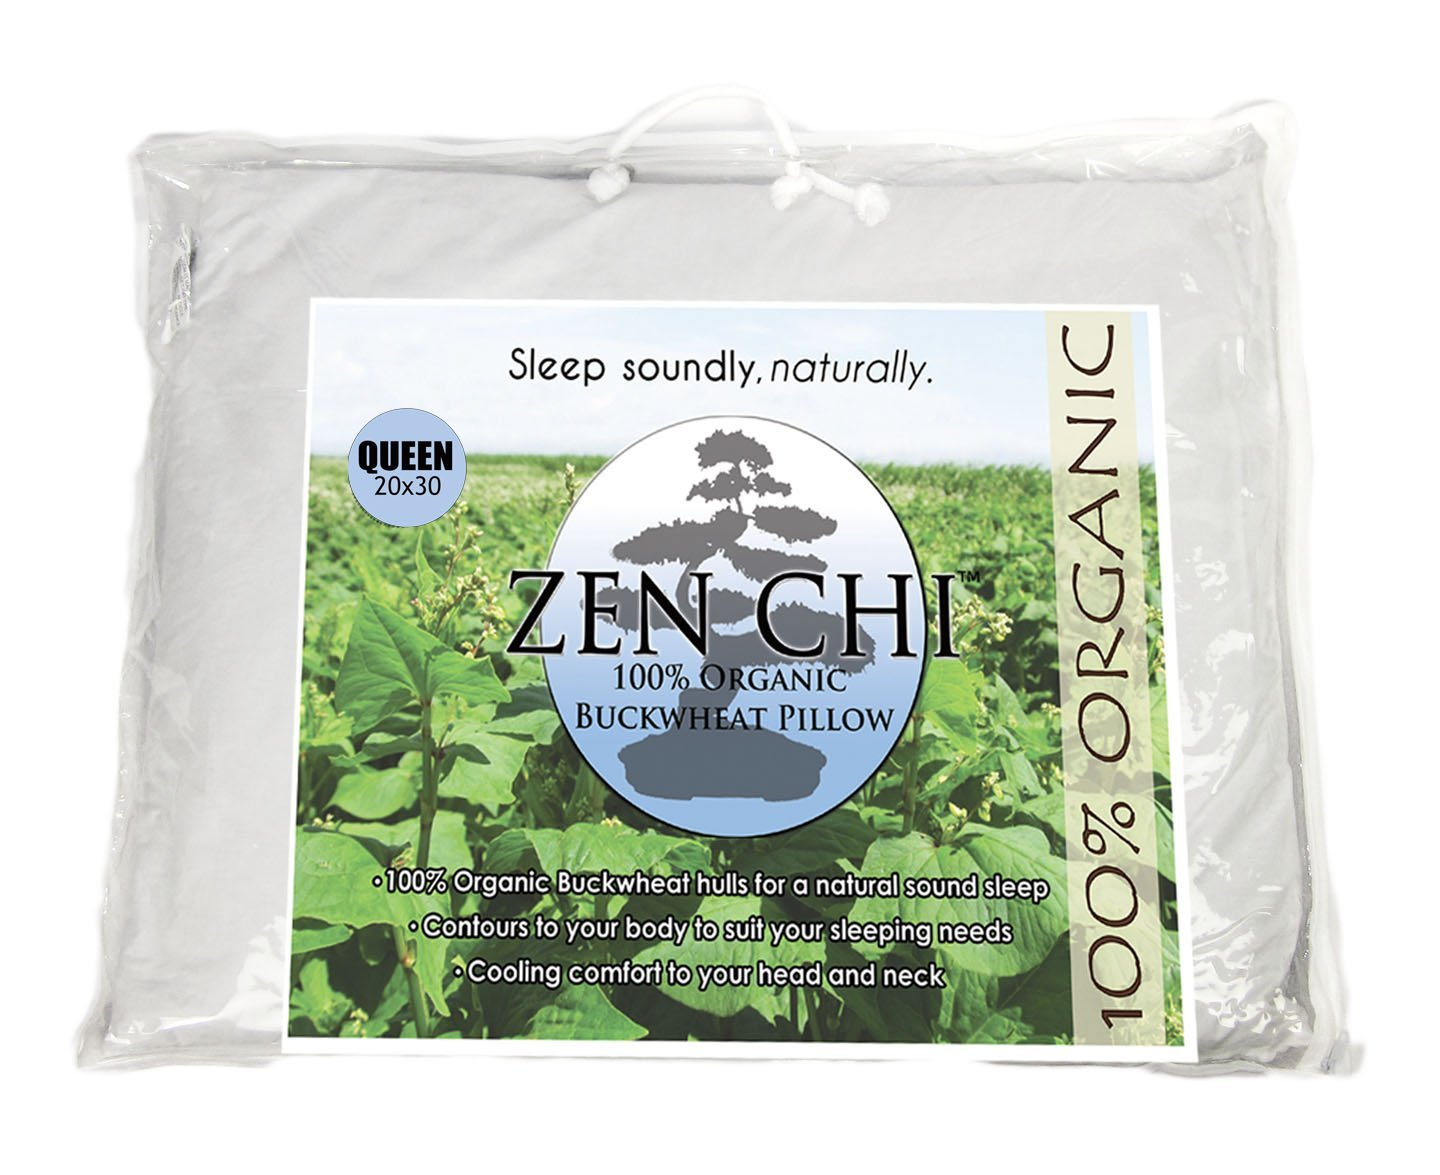 best buckwheat pillows on amazon - zen chi